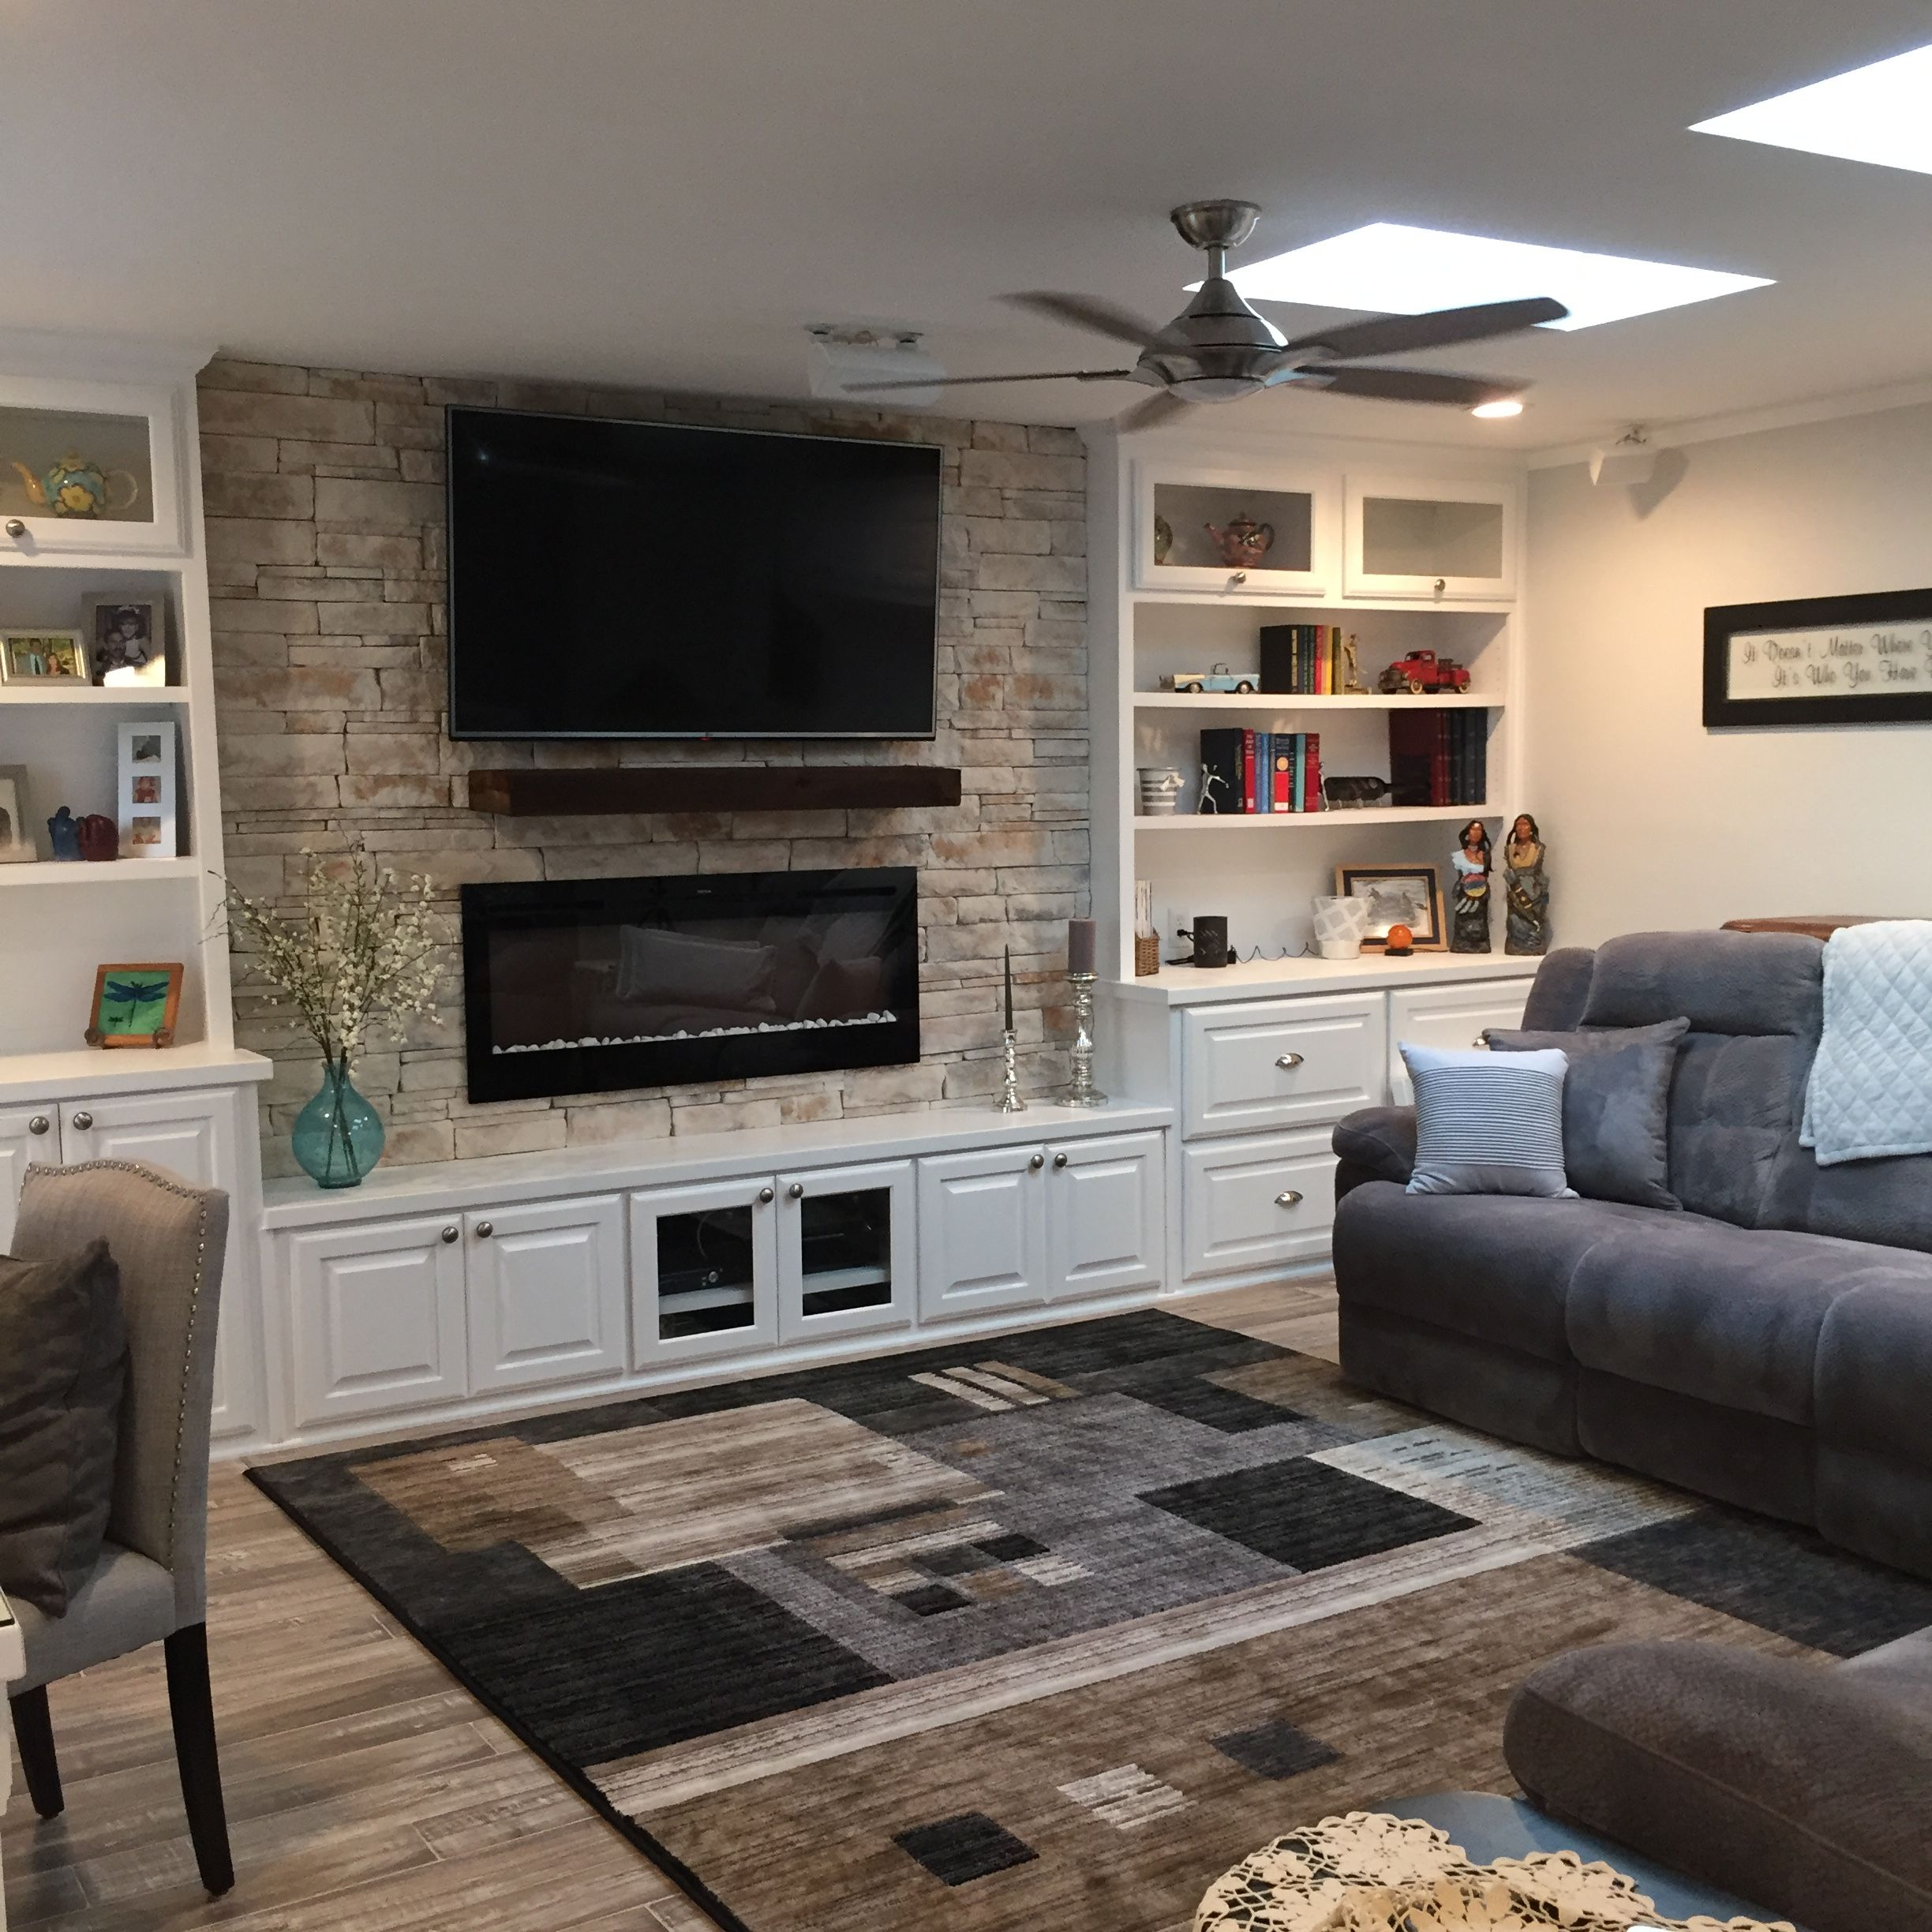 Love My New Built In Cabinets Skylights Fireplace Big Screen Tv And Rock Wall Built In Cabinets Living Room Tv Wall Living Room Furniture Layout